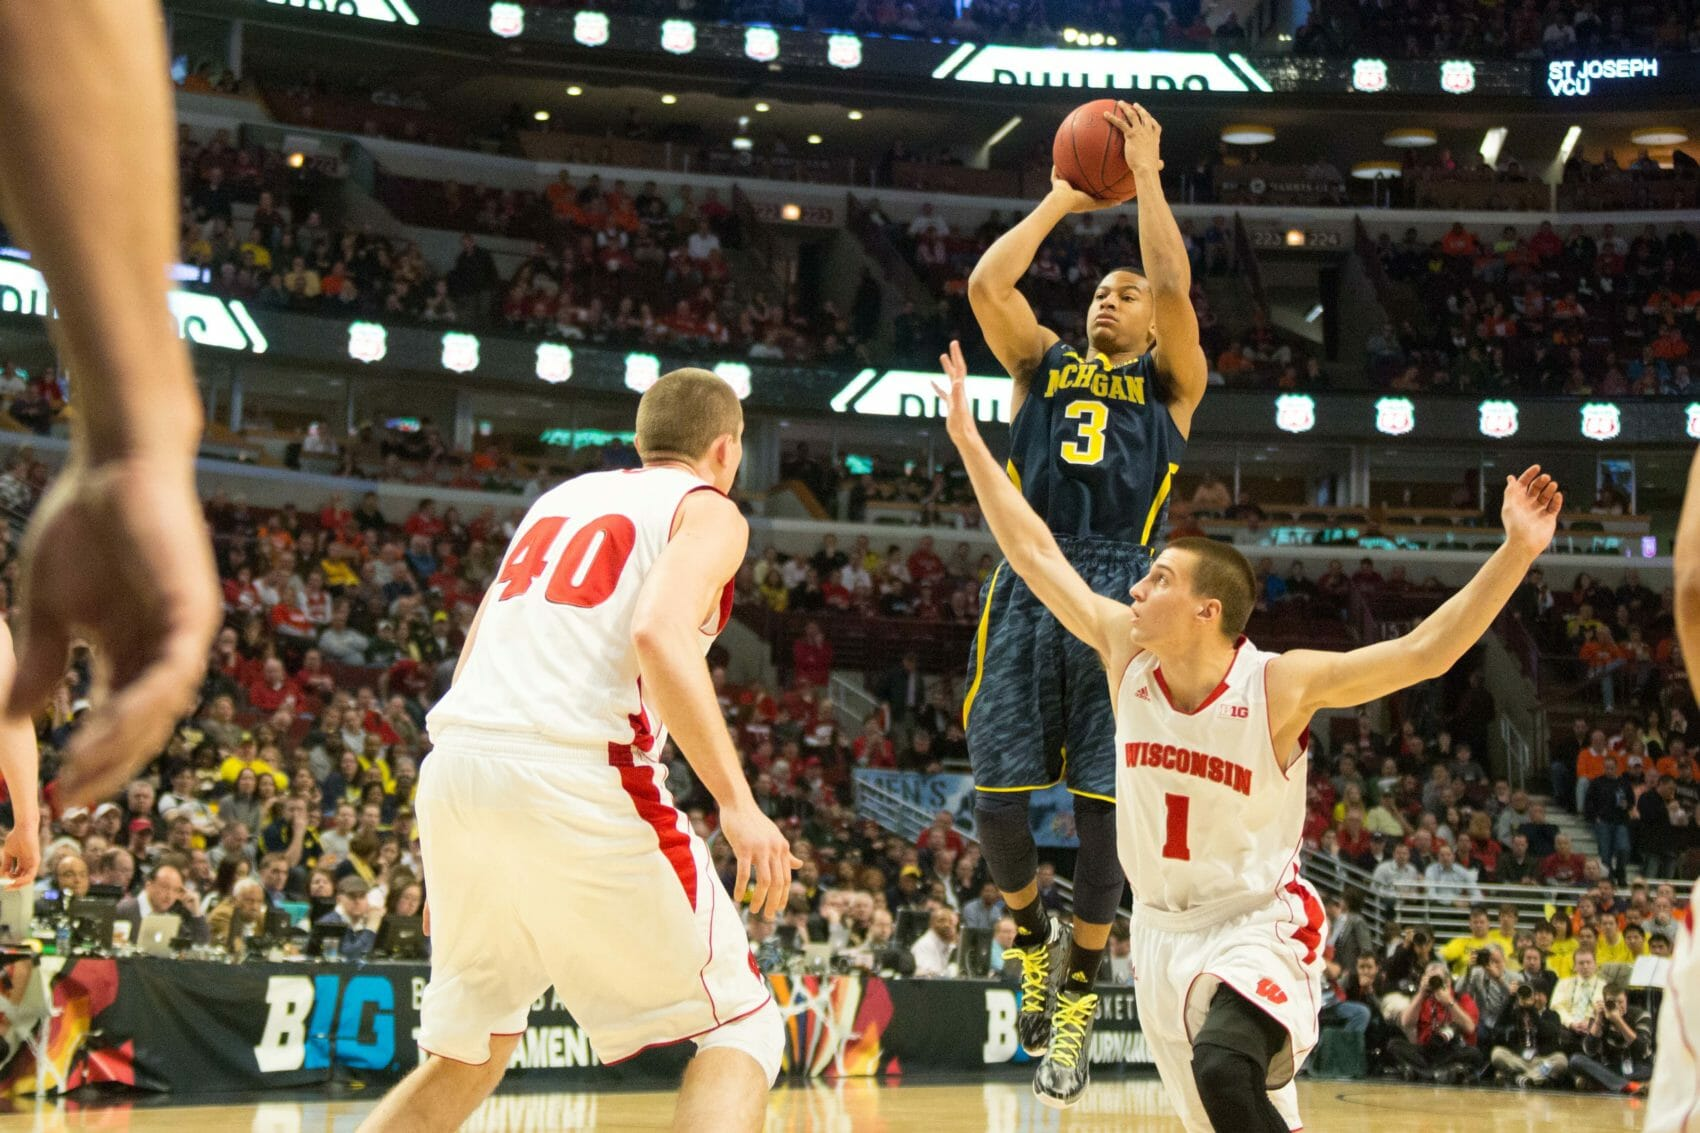 Wisconsin 68, Michigan 59-5